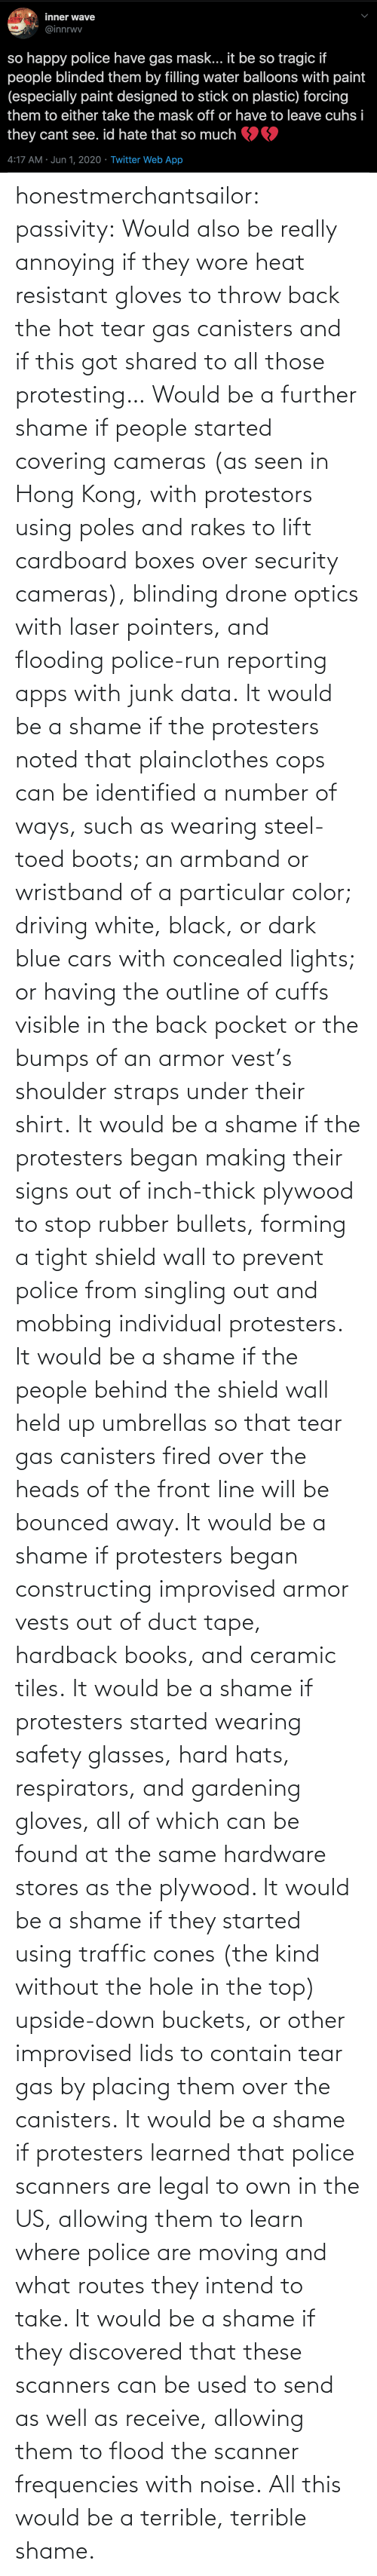 Would Be: honestmerchantsailor:  passivity: Would also be really annoying if they wore heat resistant gloves to throw back the hot tear gas canisters and if this got shared to all those protesting… Would be a further shame if people started covering cameras (as seen in Hong Kong, with protestors using poles and rakes to lift cardboard boxes over security cameras), blinding drone optics with laser pointers, and flooding police-run reporting apps with junk data. It would be a shame if the protesters noted that plainclothes cops can be identified a number of ways, such as wearing steel-toed boots; an armband or wristband of a particular color; driving white, black, or dark blue cars with concealed lights; or having the outline of cuffs visible in the back pocket or the bumps of an armor vest's shoulder straps under their shirt. It would be a shame if the protesters began making their signs out of inch-thick plywood to stop rubber bullets, forming a tight shield wall to prevent police from singling out and mobbing individual protesters. It would be a shame if the people behind the shield wall held up umbrellas so that tear gas canisters fired over the heads of the front line will be bounced away. It would be a shame if protesters began constructing improvised armor vests out of duct tape, hardback books, and ceramic tiles. It would be a shame if protesters started wearing safety glasses, hard hats, respirators, and gardening gloves, all of which can be found at the same hardware stores as the plywood. It would be a shame if they started using traffic cones (the kind without the hole in the top) upside-down buckets, or other improvised lids to contain tear gas by placing them over the canisters. It would be a shame if protesters learned that police scanners are legal to own in the US, allowing them to learn where police are moving and what routes they intend to take. It would be a shame if they discovered that these scanners can be used to send as well as receive, allowing them to flood the scanner frequencies with noise. All this would be a terrible, terrible shame.